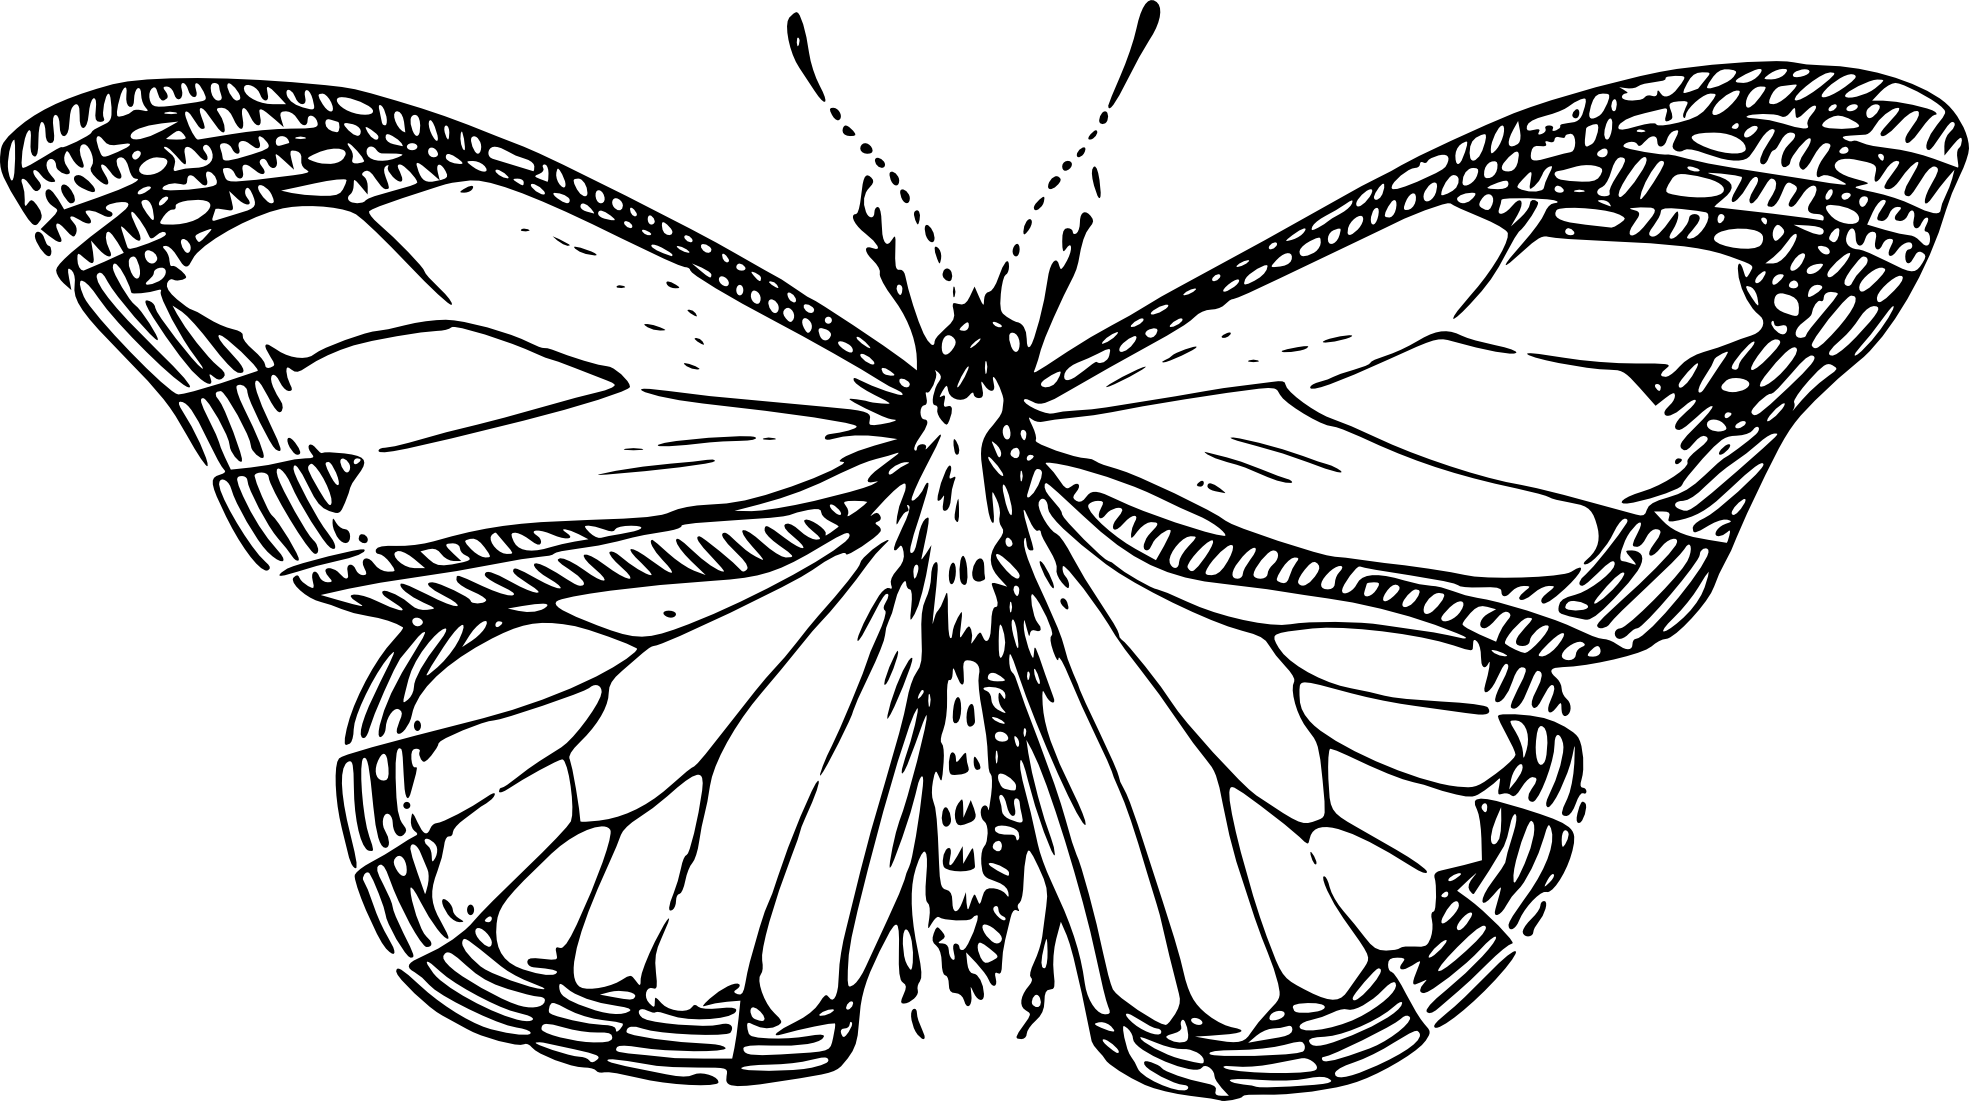 Line Art Work : Butterfly line drawing clipart best